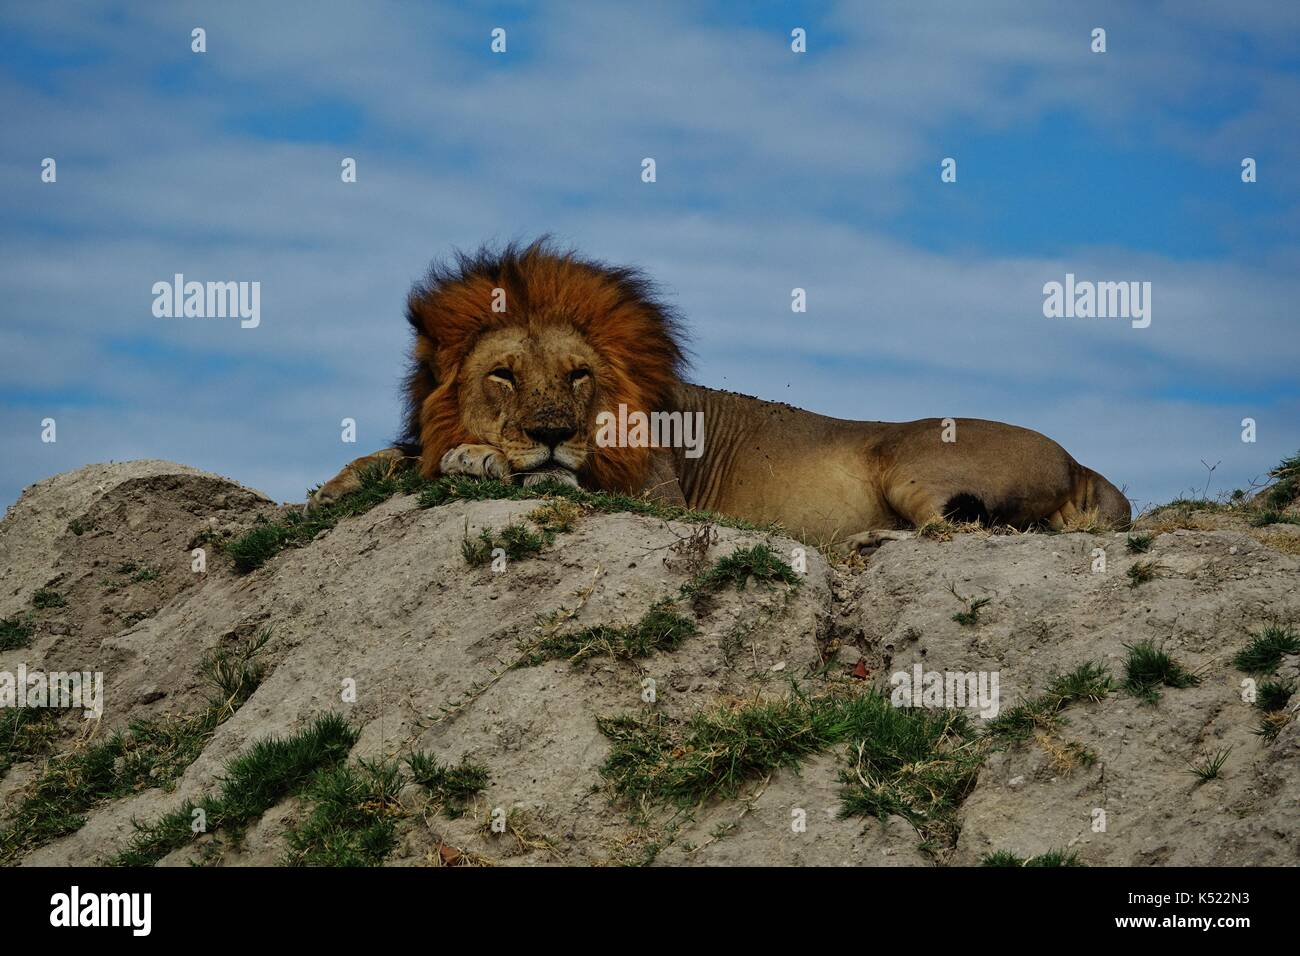 Male lion sleeping on hill - Stock Image